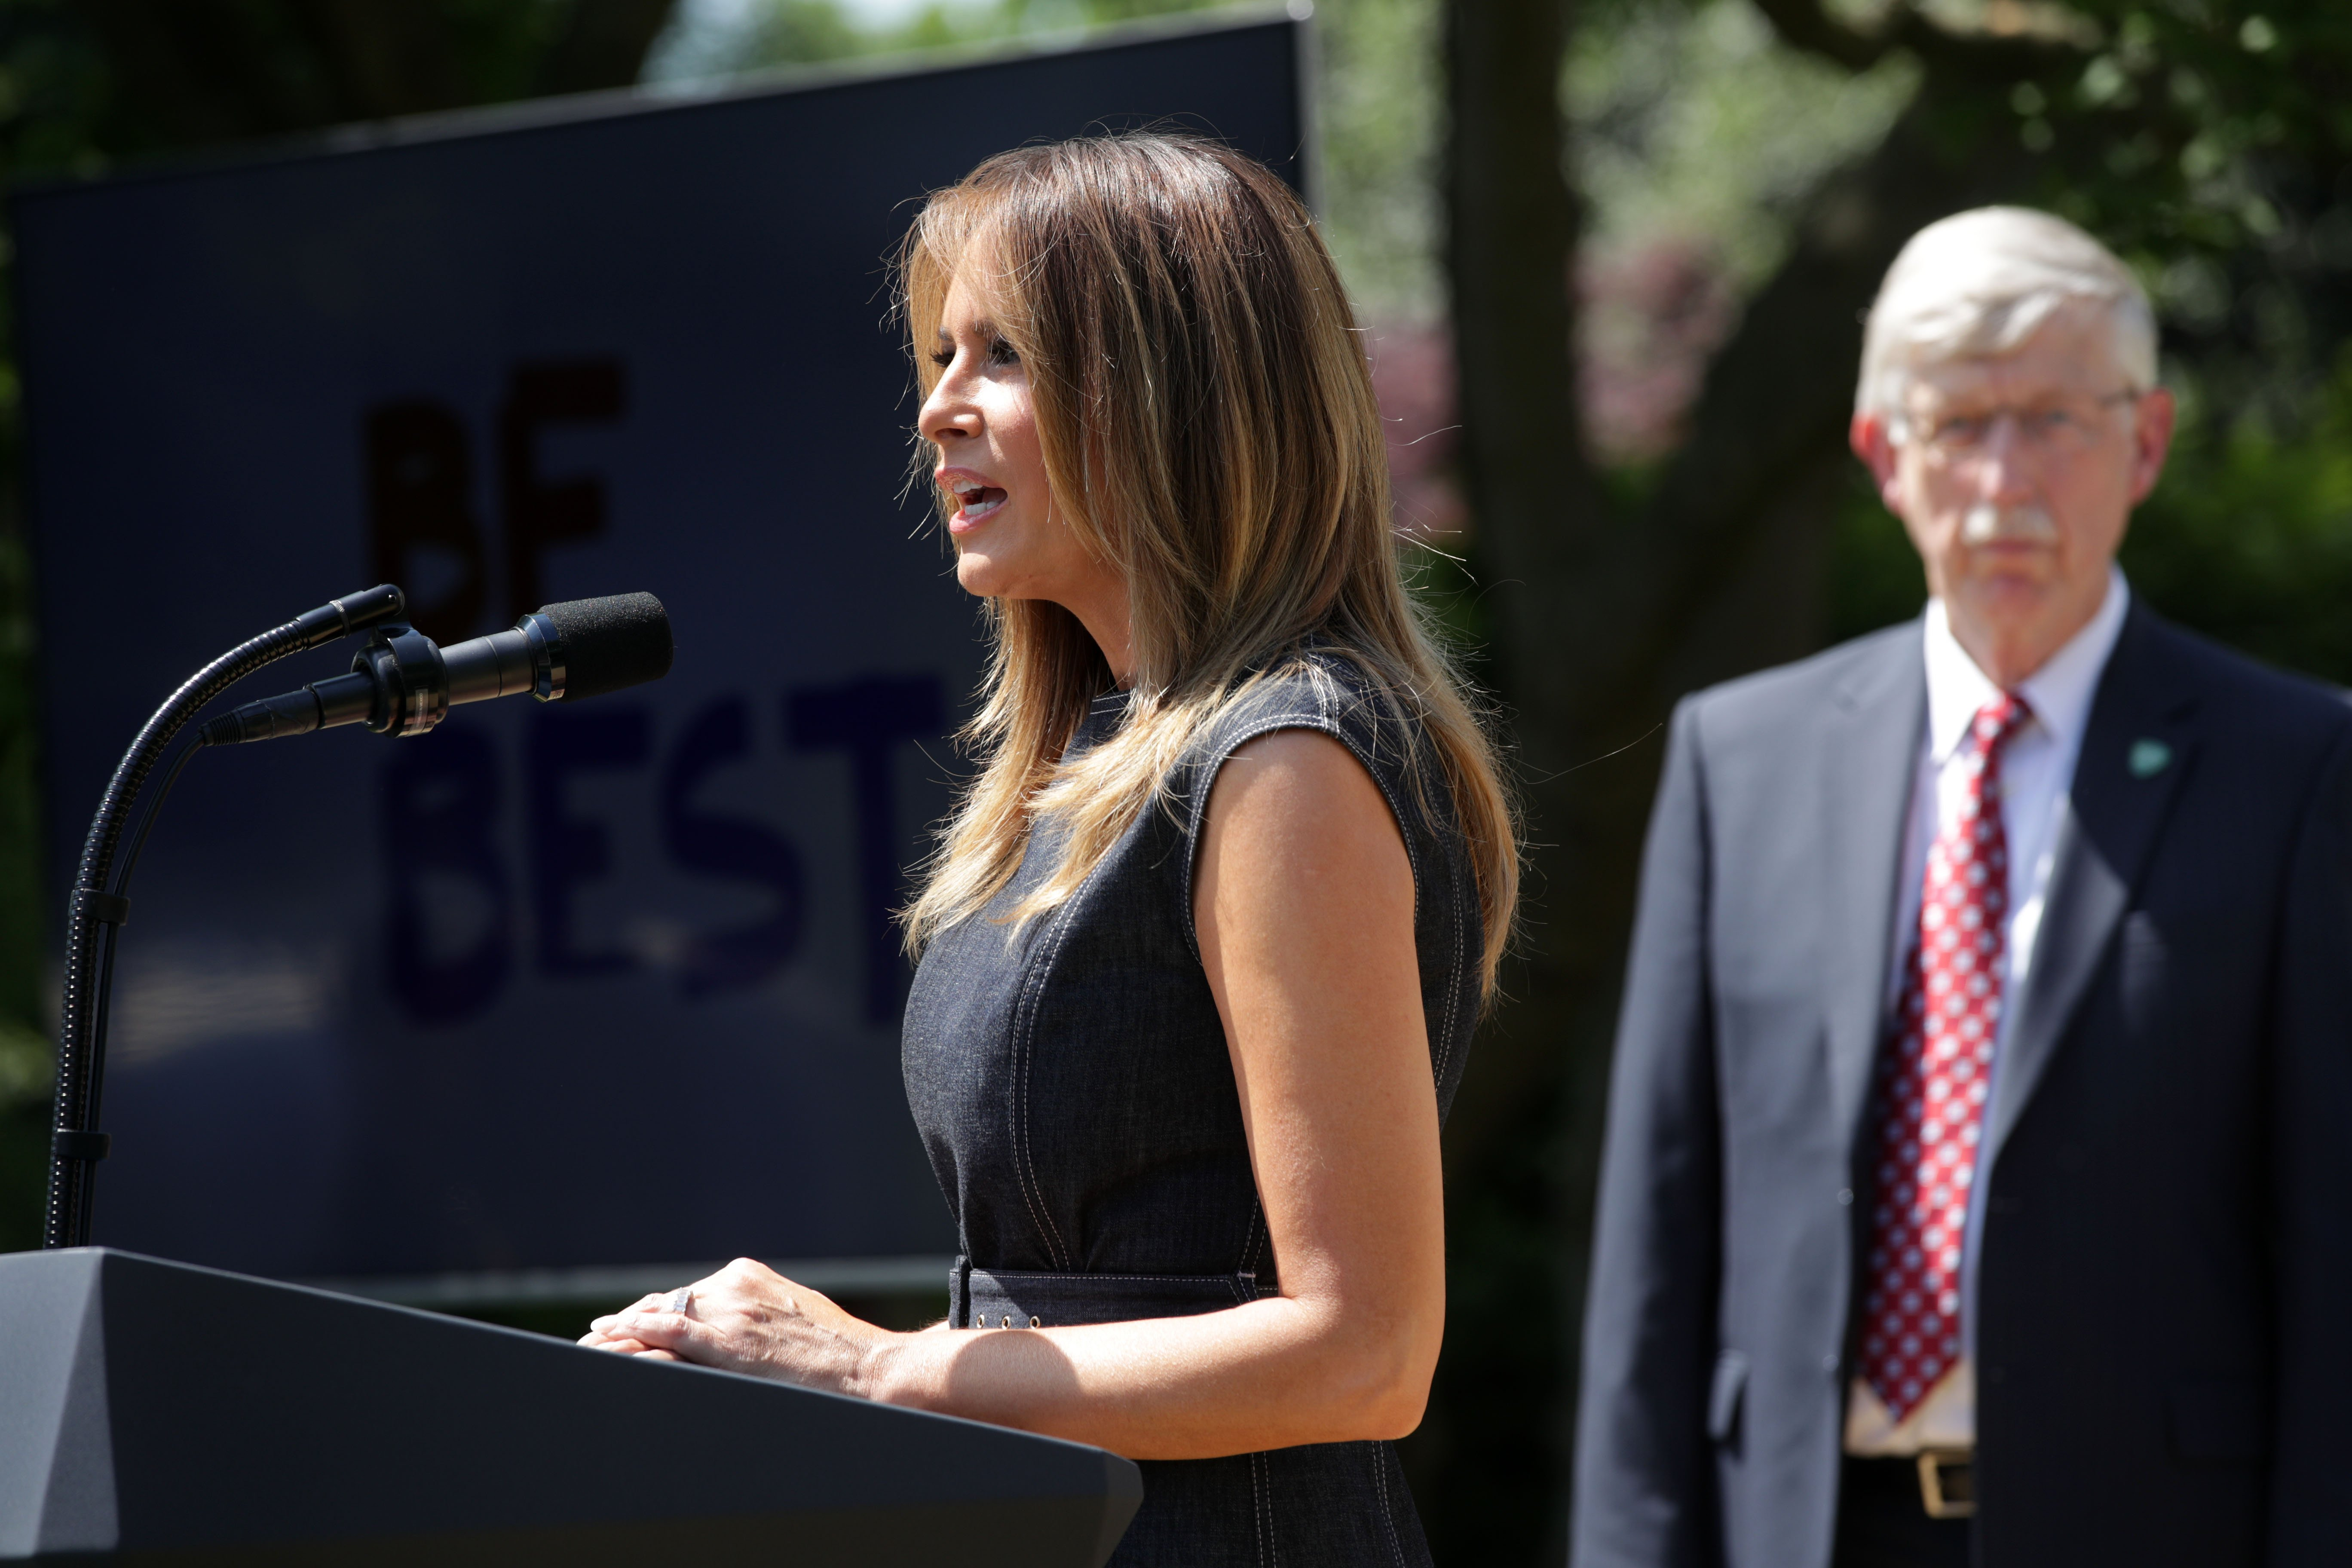 Melania Trump delivering a speech during a Rose Garden event at the White House a Rose Garden event to celebrate the first birthday of the Be Best campaign | Photo: Getty Images